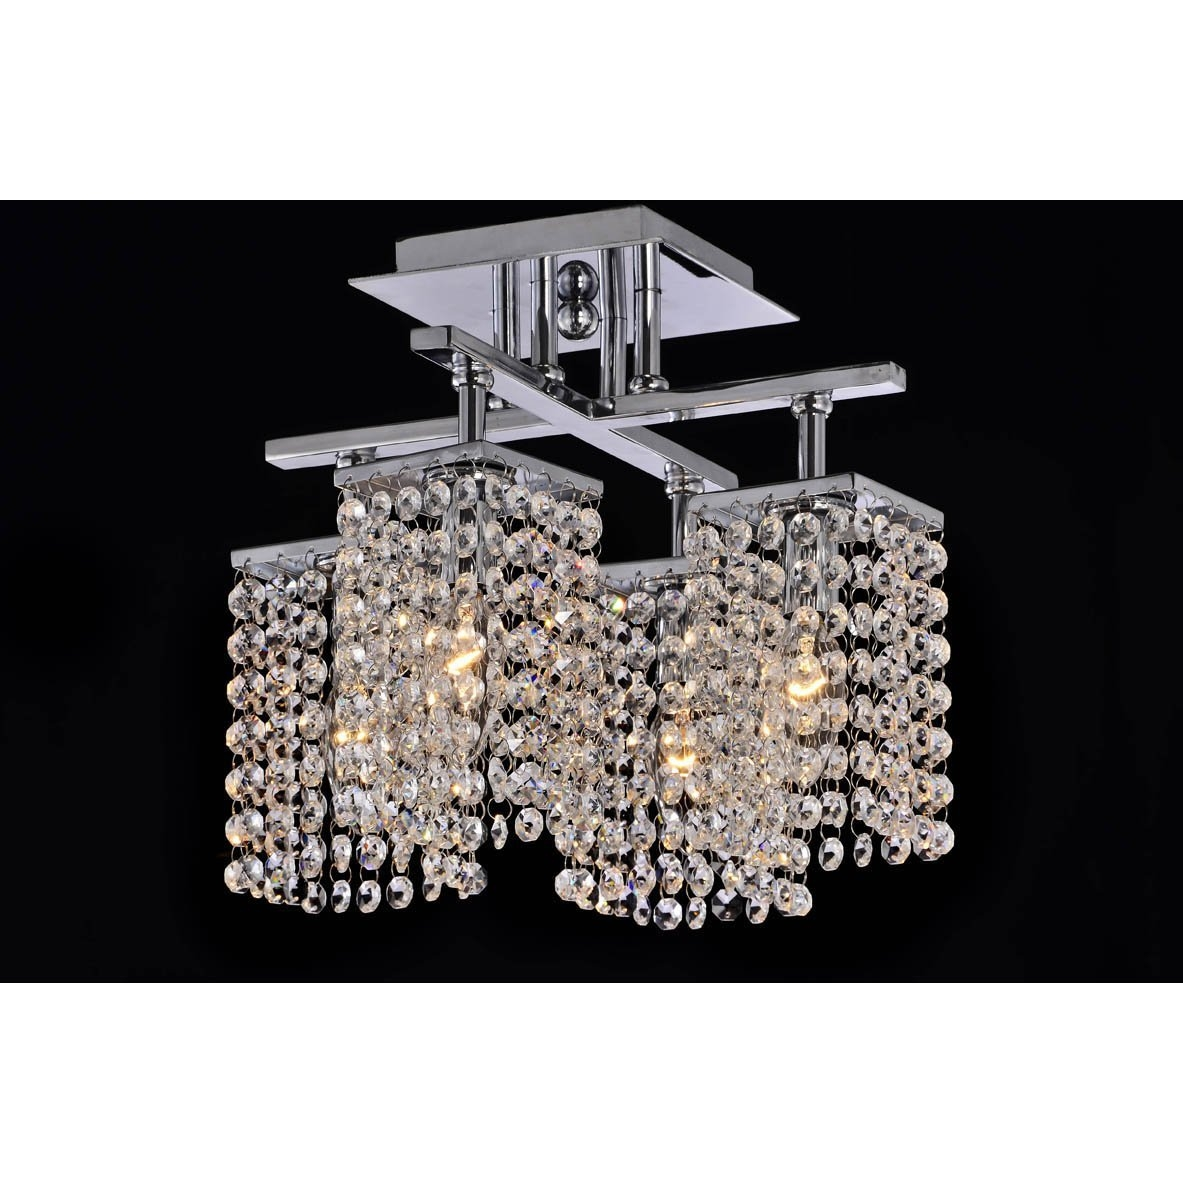 Modern Flush Chrome Crystal Chandelier Pendant Fixture Amazon Within Chrome Chandeliers (Image 12 of 15)